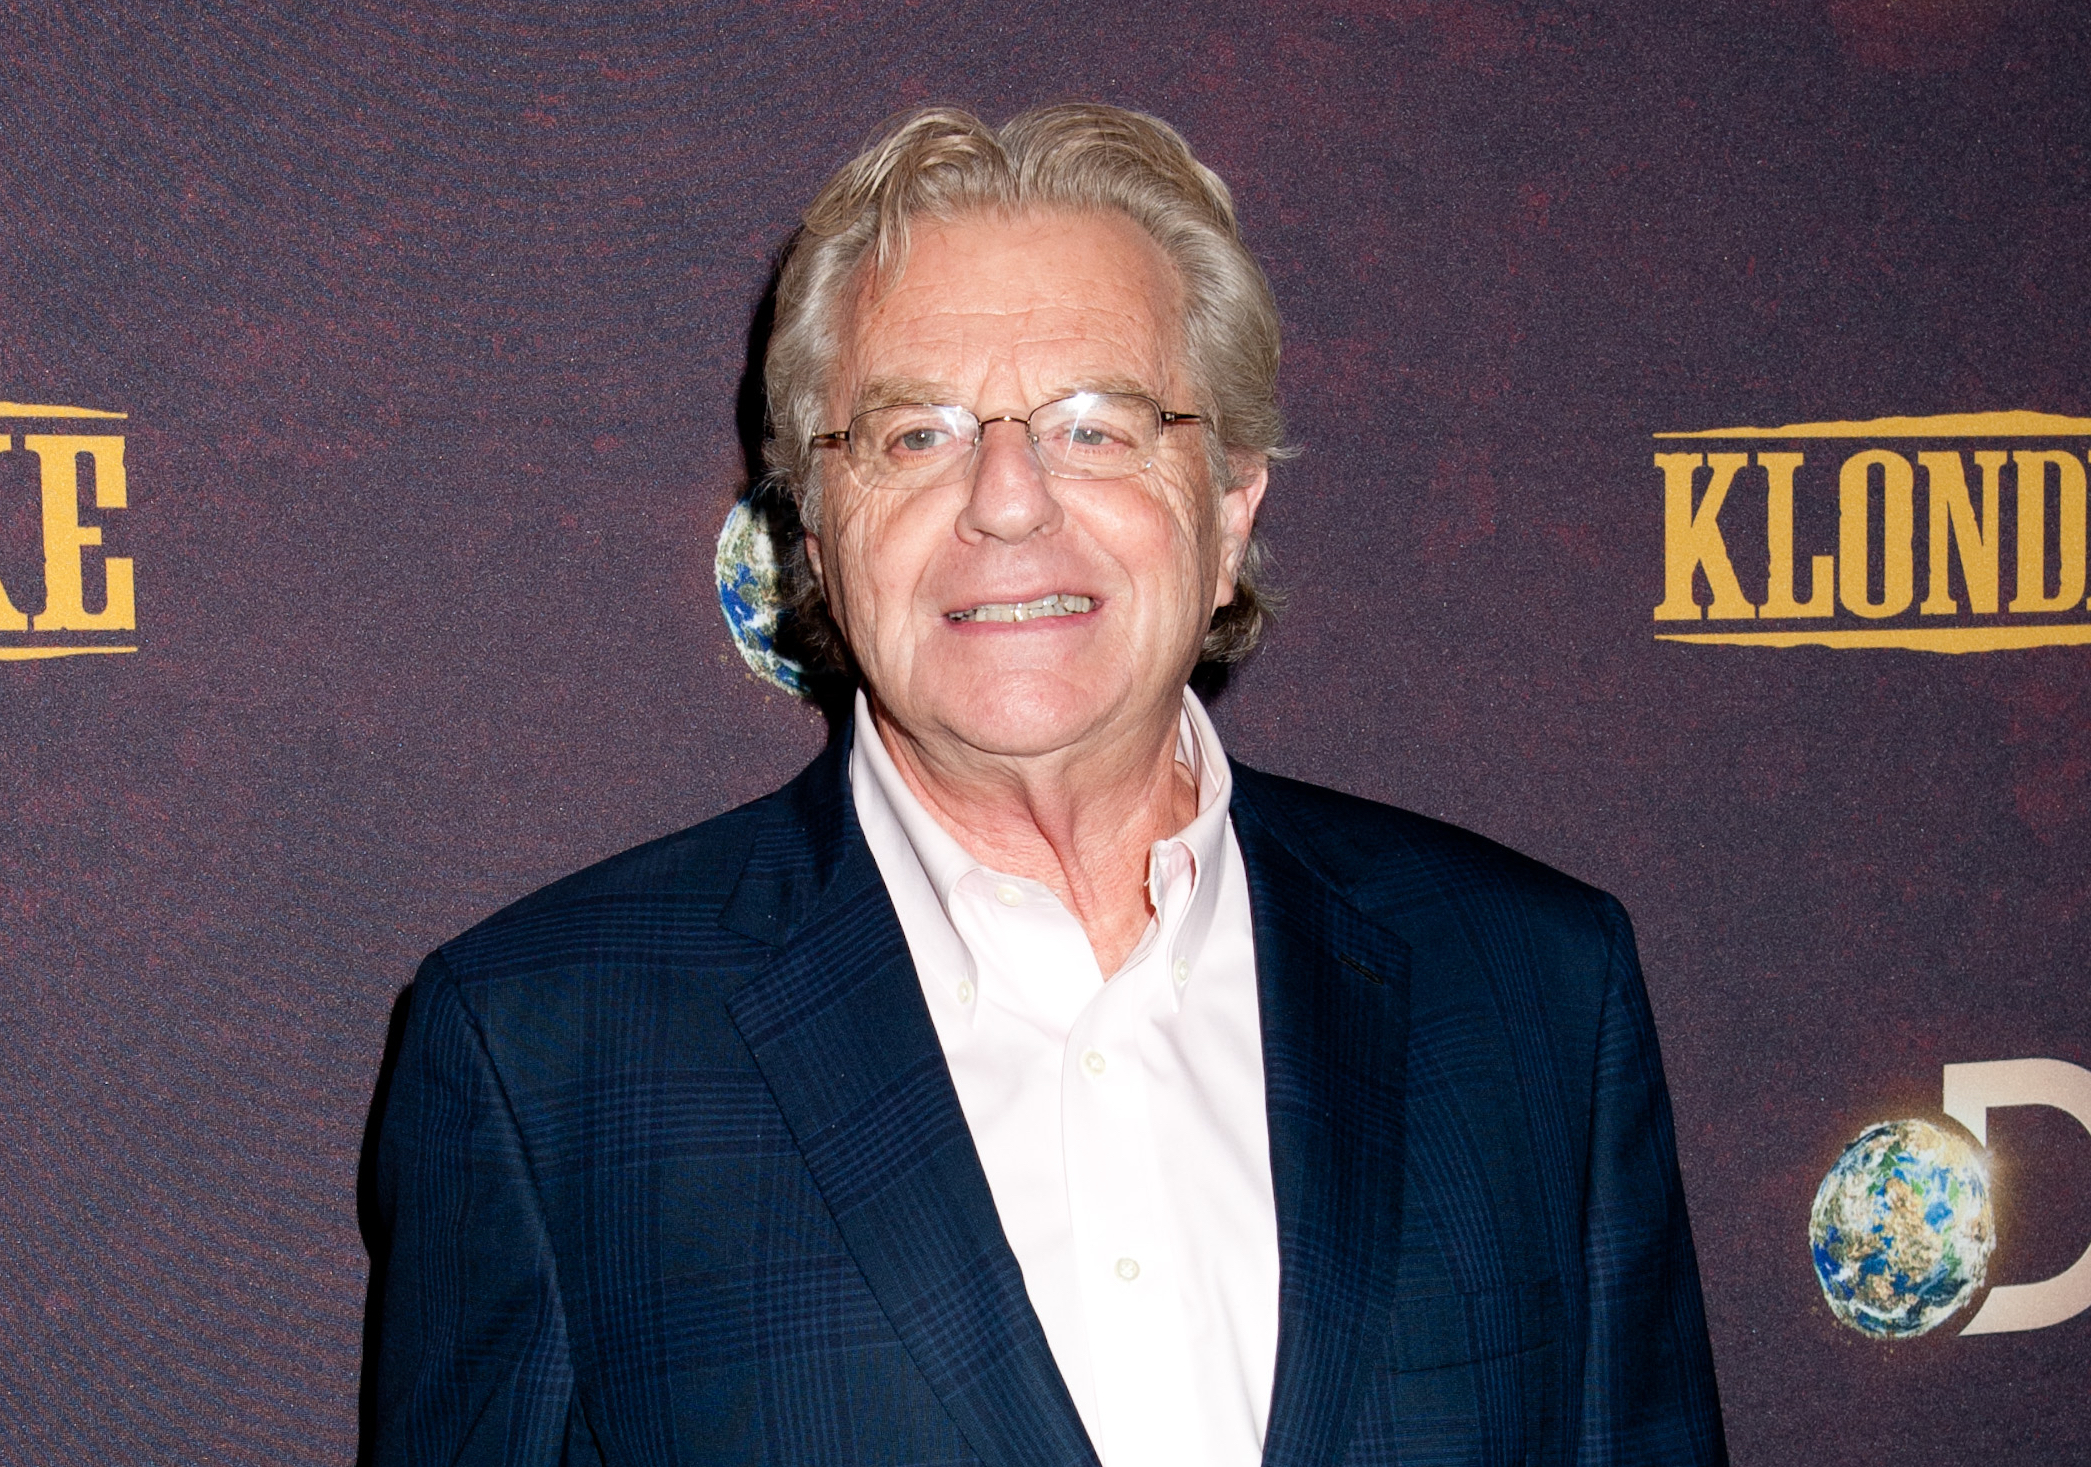 Jerry Springer Show Comes To Abrupt End After 28 Years